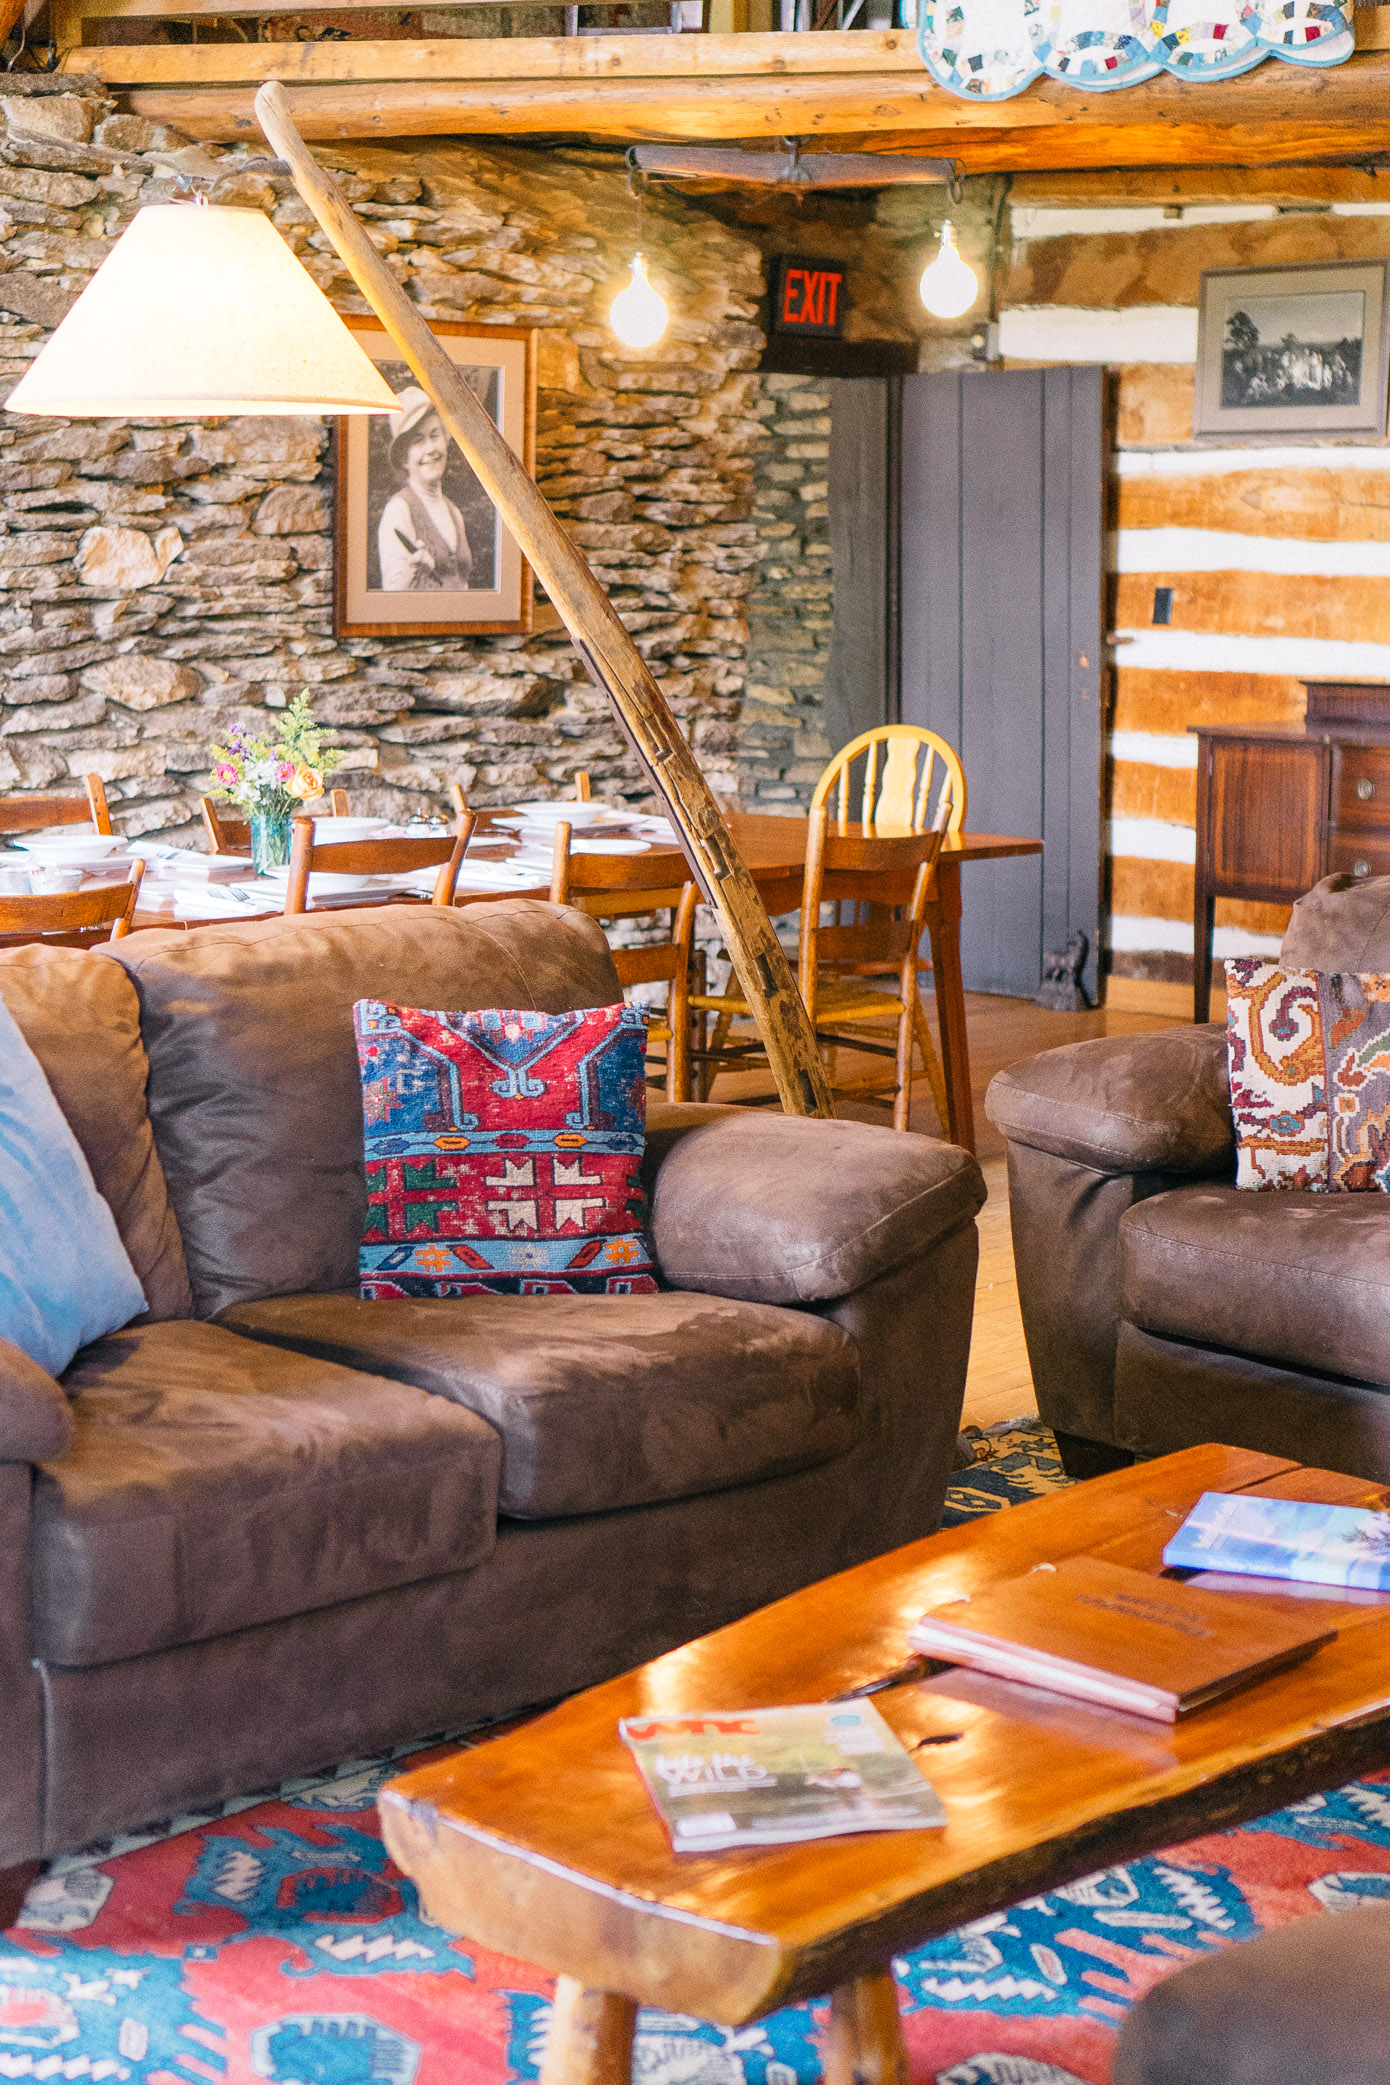 Cataloochee Ranch Review | Where to Rent a Cabin in the NC Mountains | Louella Reese Life & Style Blog